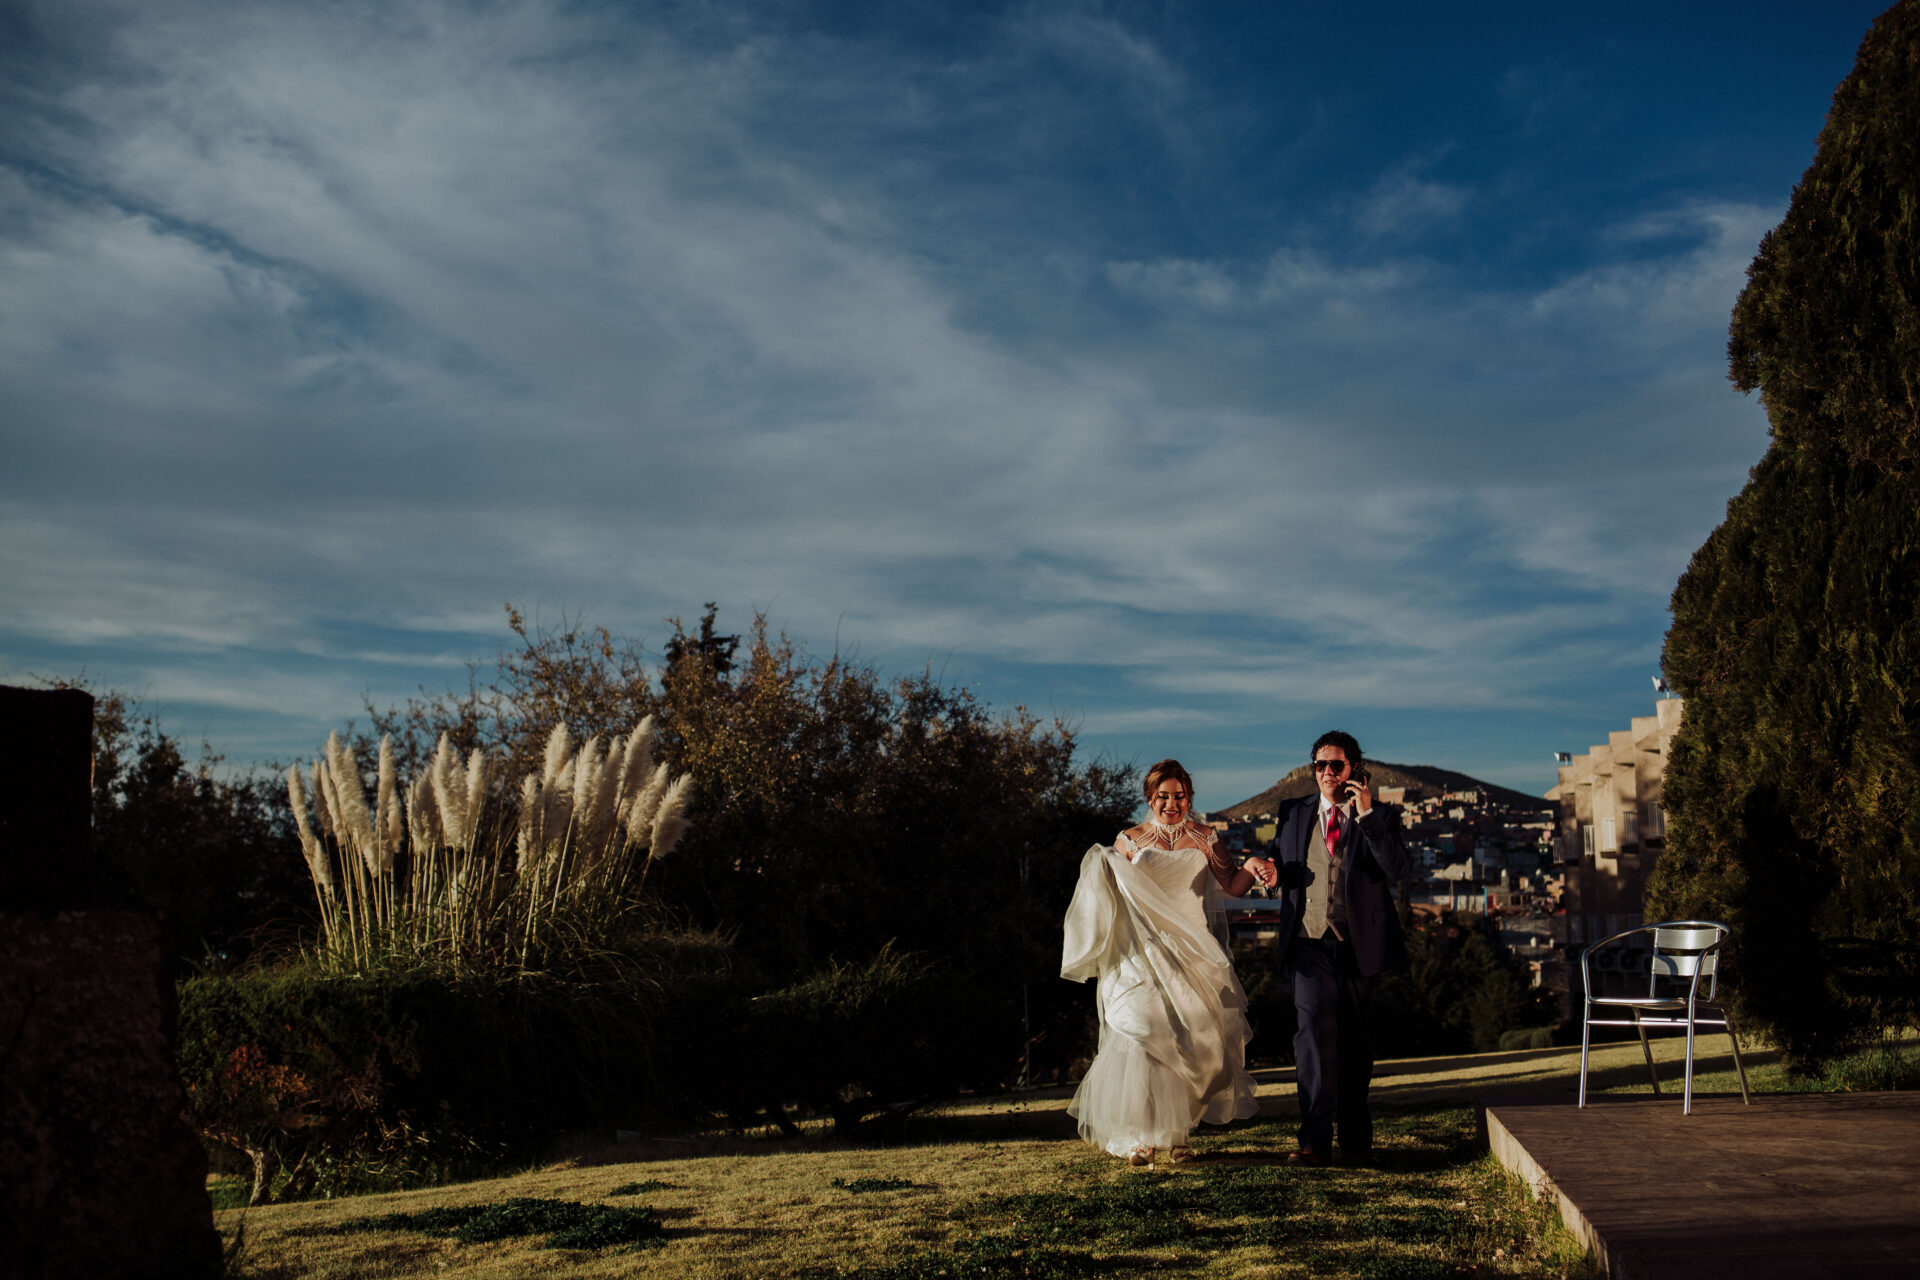 javier_noriega_fotografo_bodas_gaviones_zacatecas_wedding_photographer18